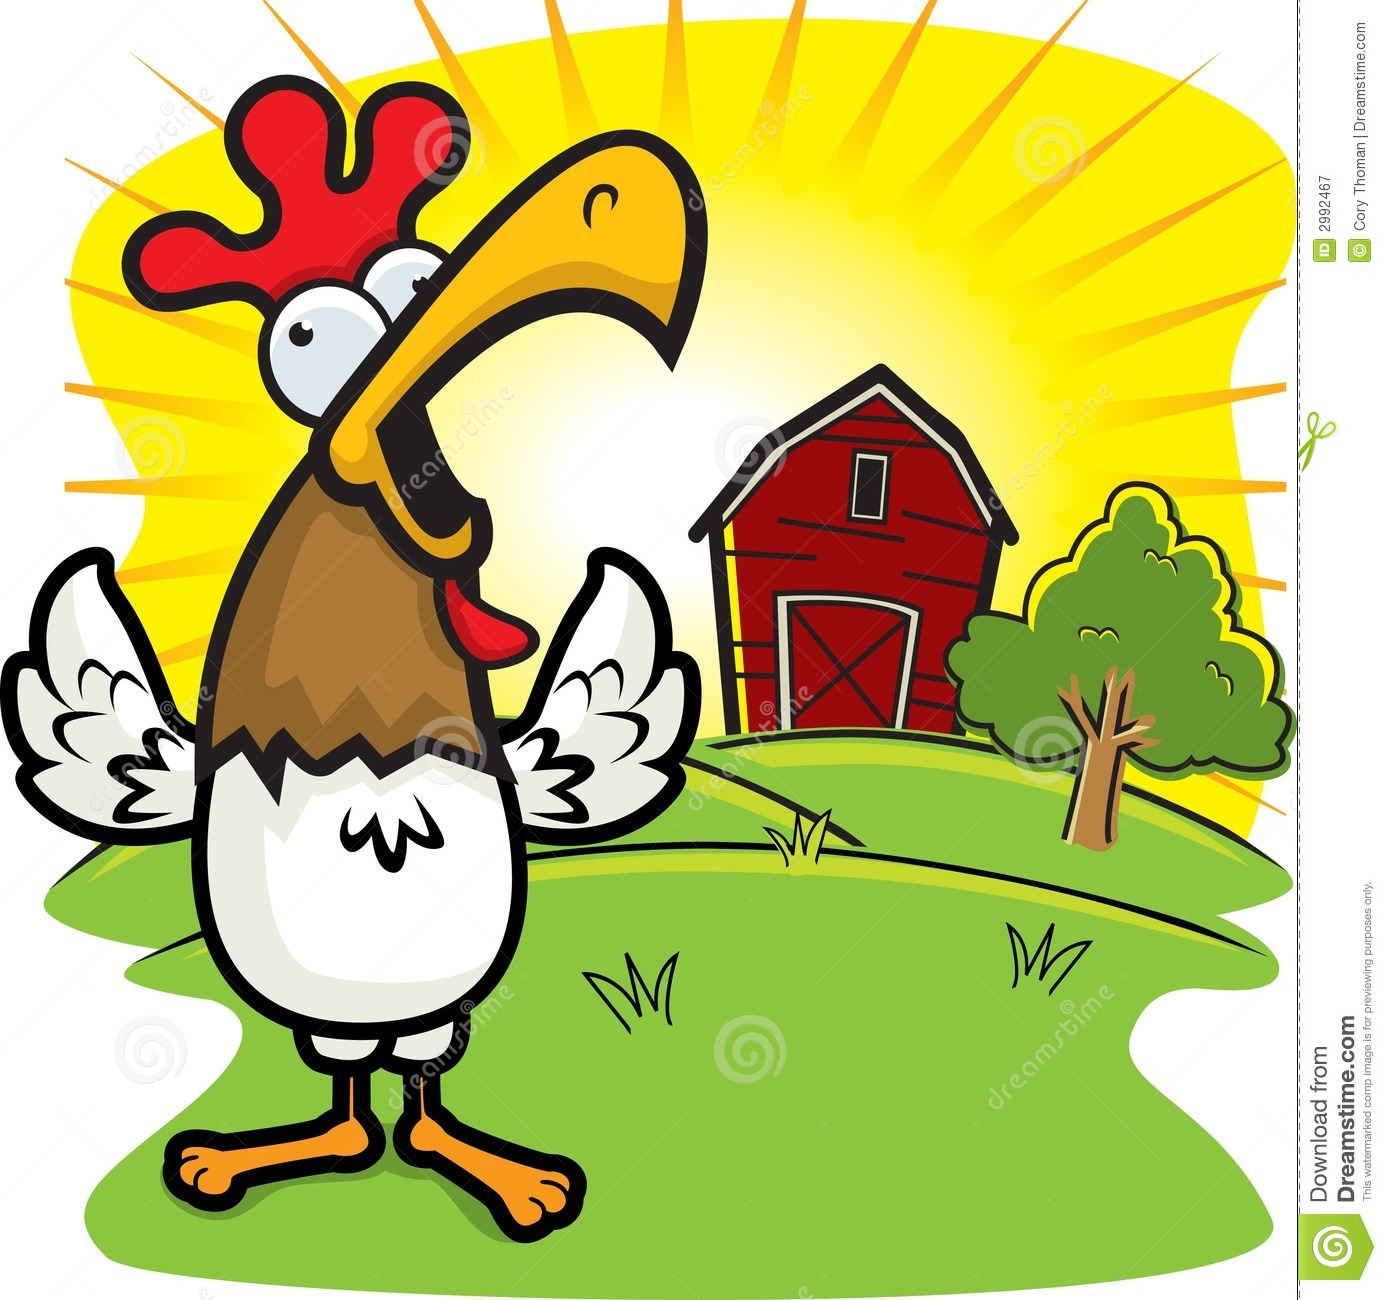 Morning Clip Art Vector Morning Graphics-Morning clip art vector morning graphics image. Rooster Crowing Royalty Free Stock Photography Image 2992467-15